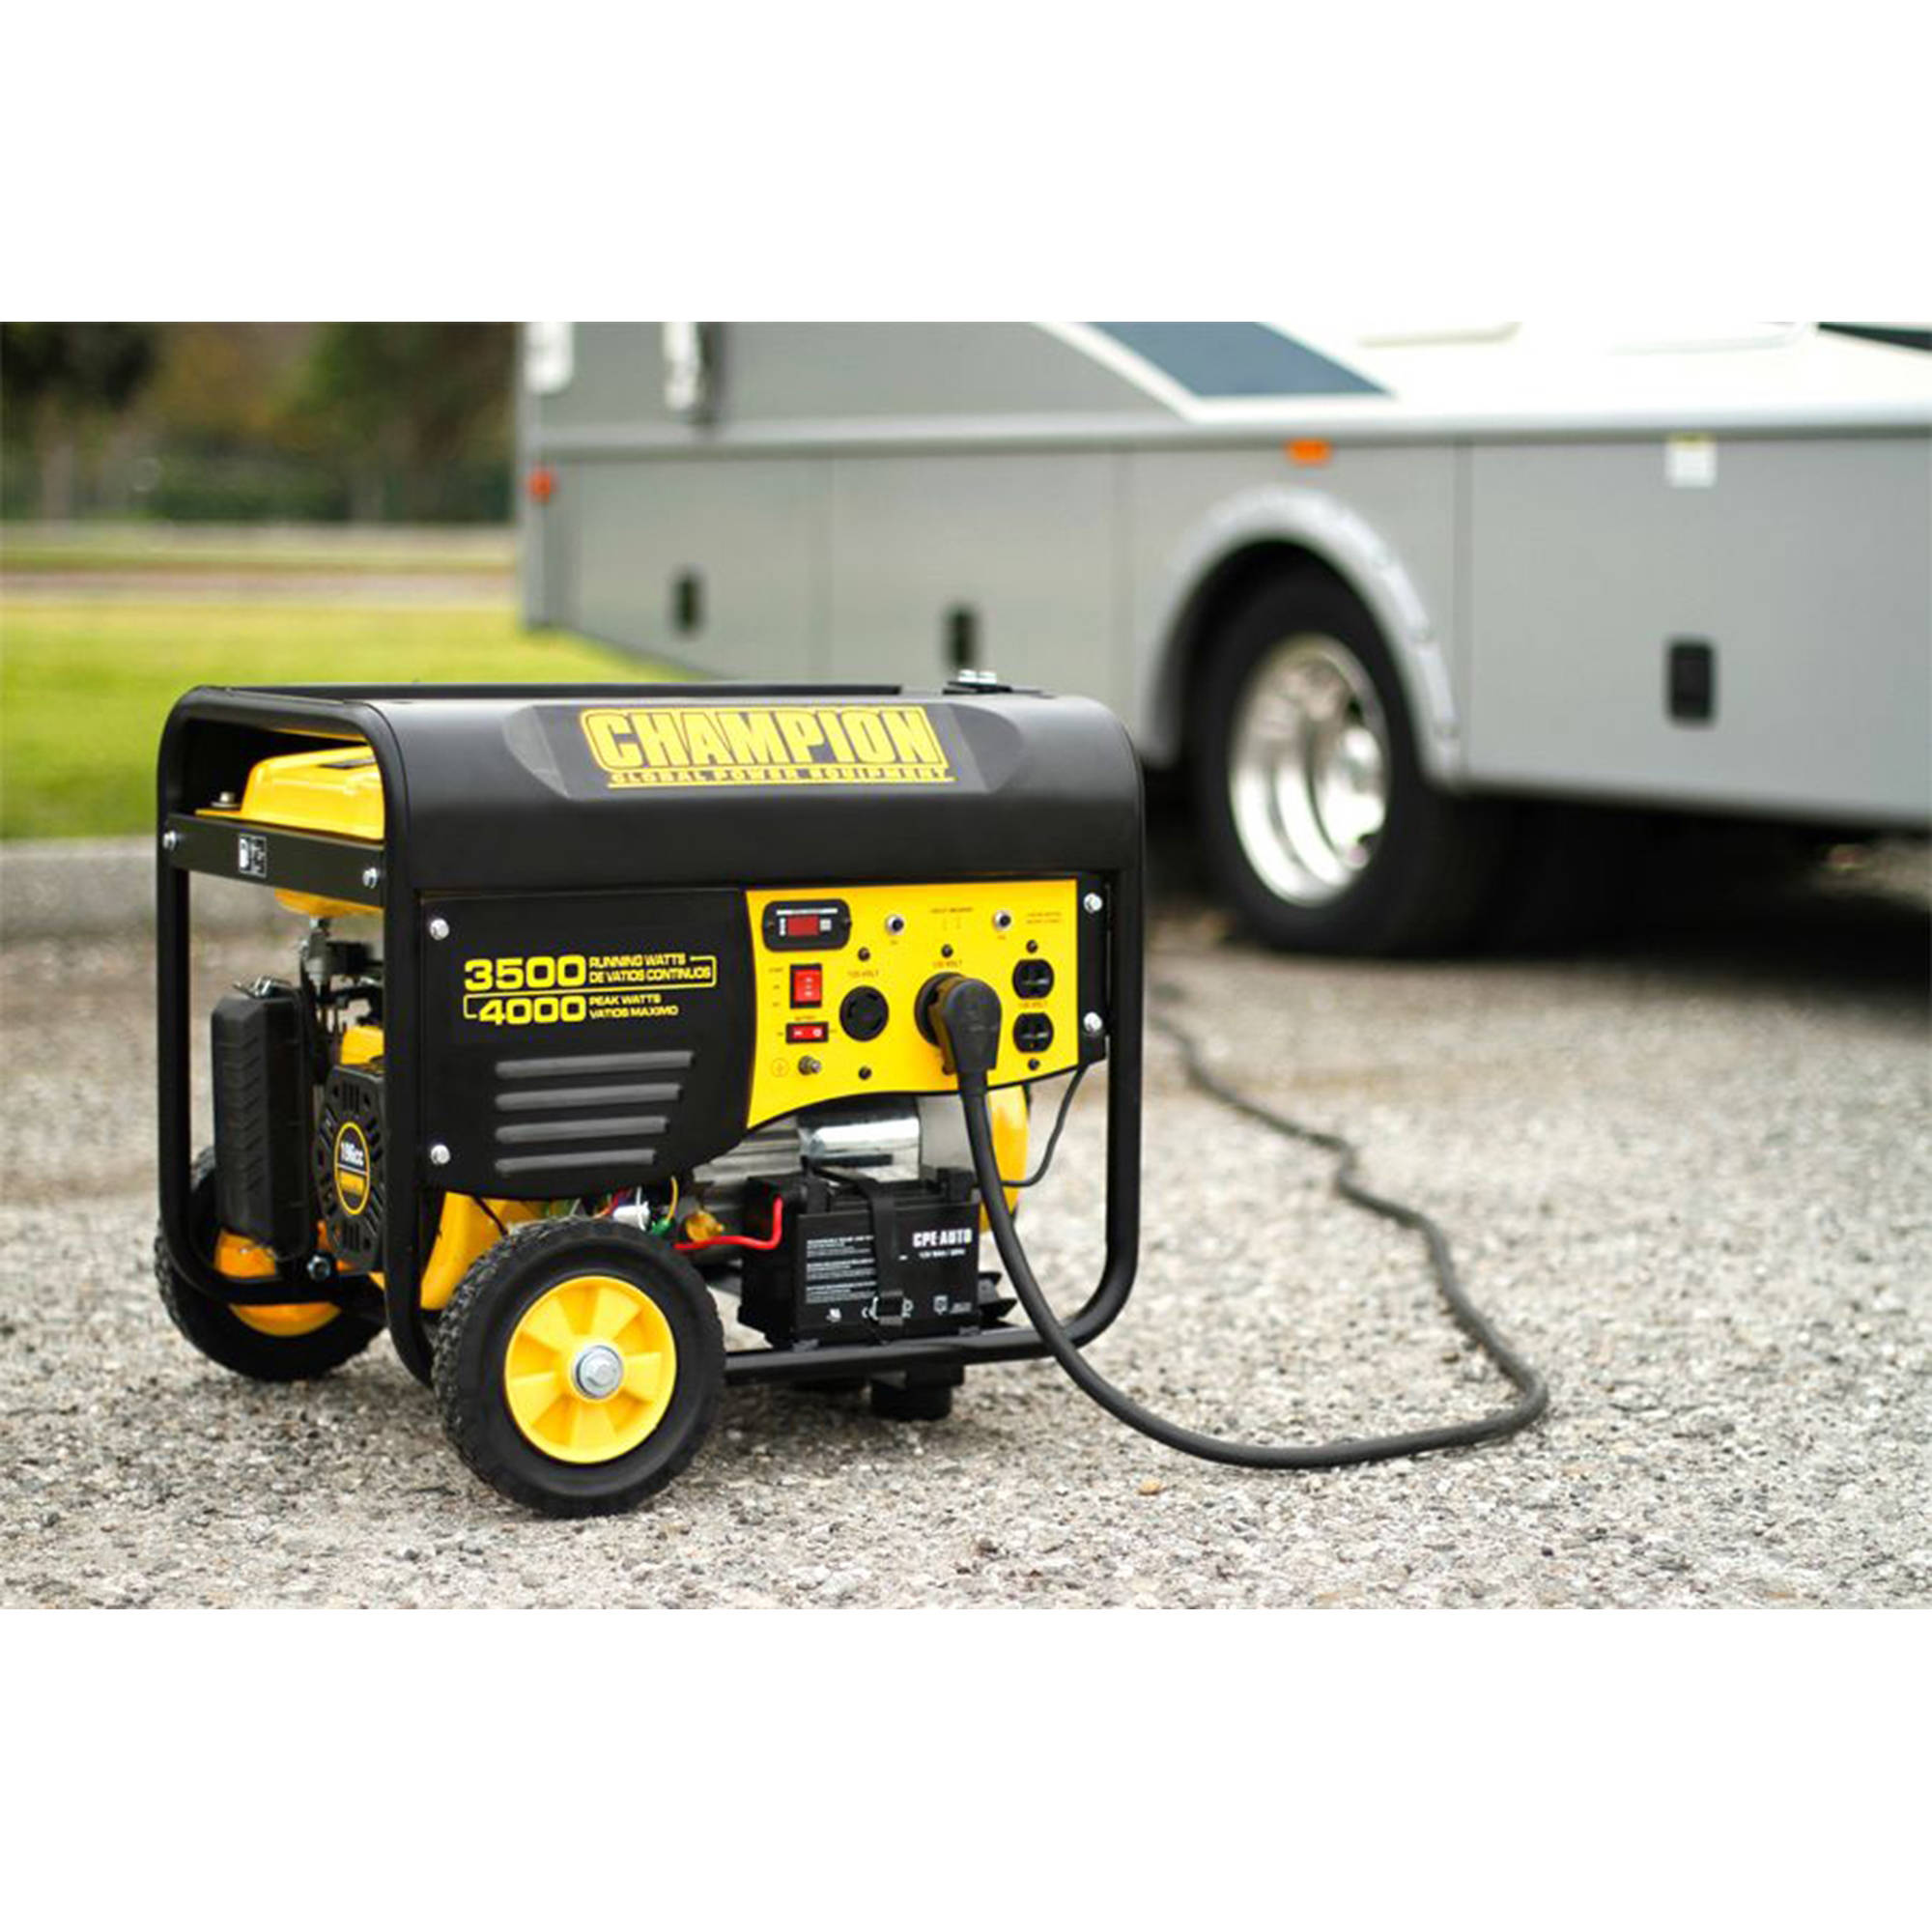 Champion 3500 Watt RV Ready Portable Generator with Wireless